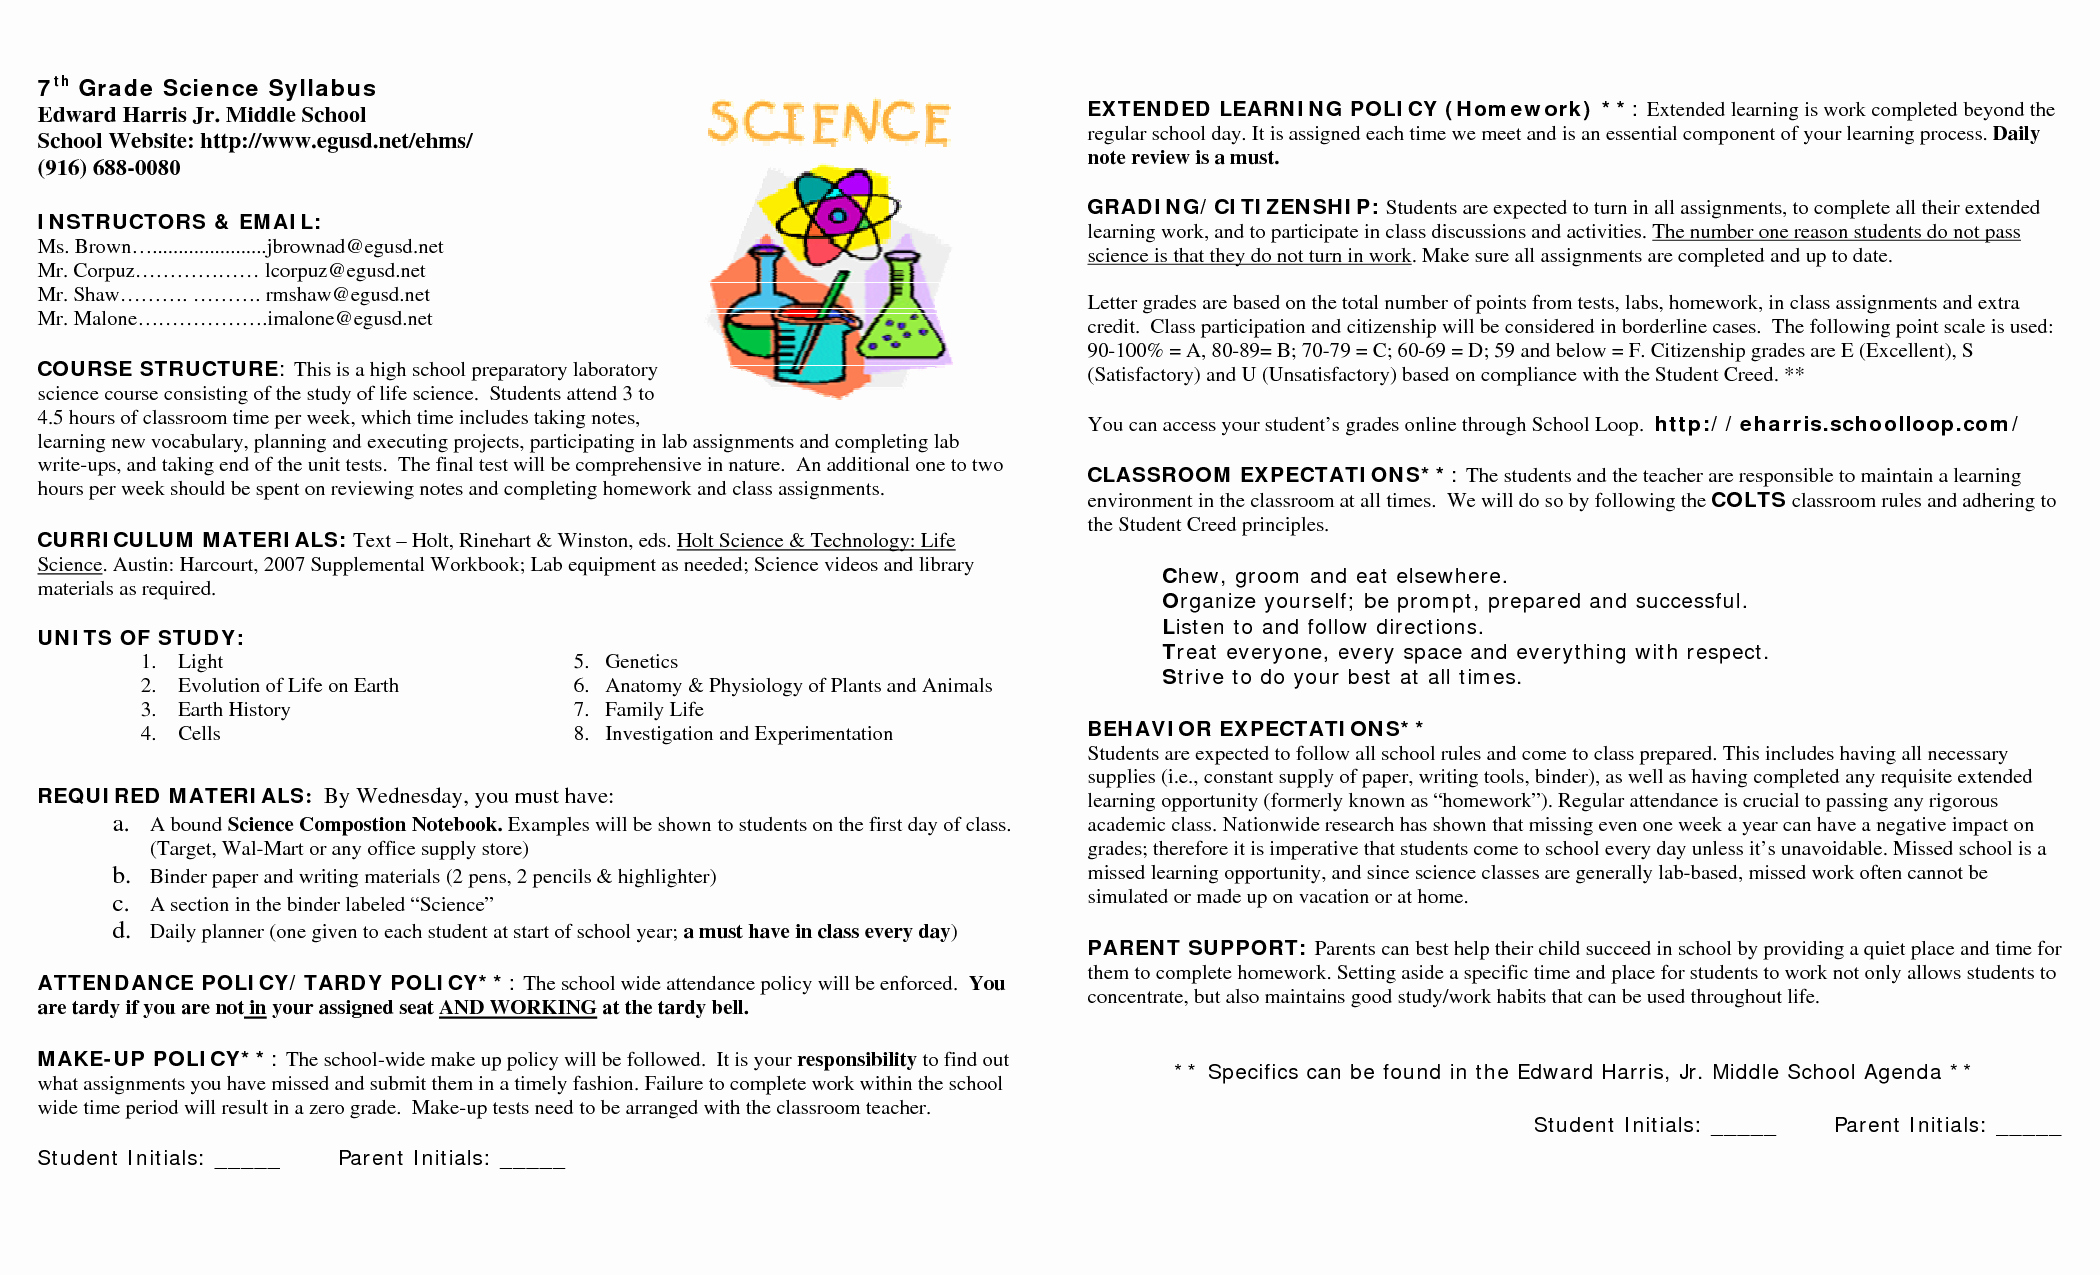 Syllabus Template High School Awesome 15 Awesome Syllabus Template for Middle School Images